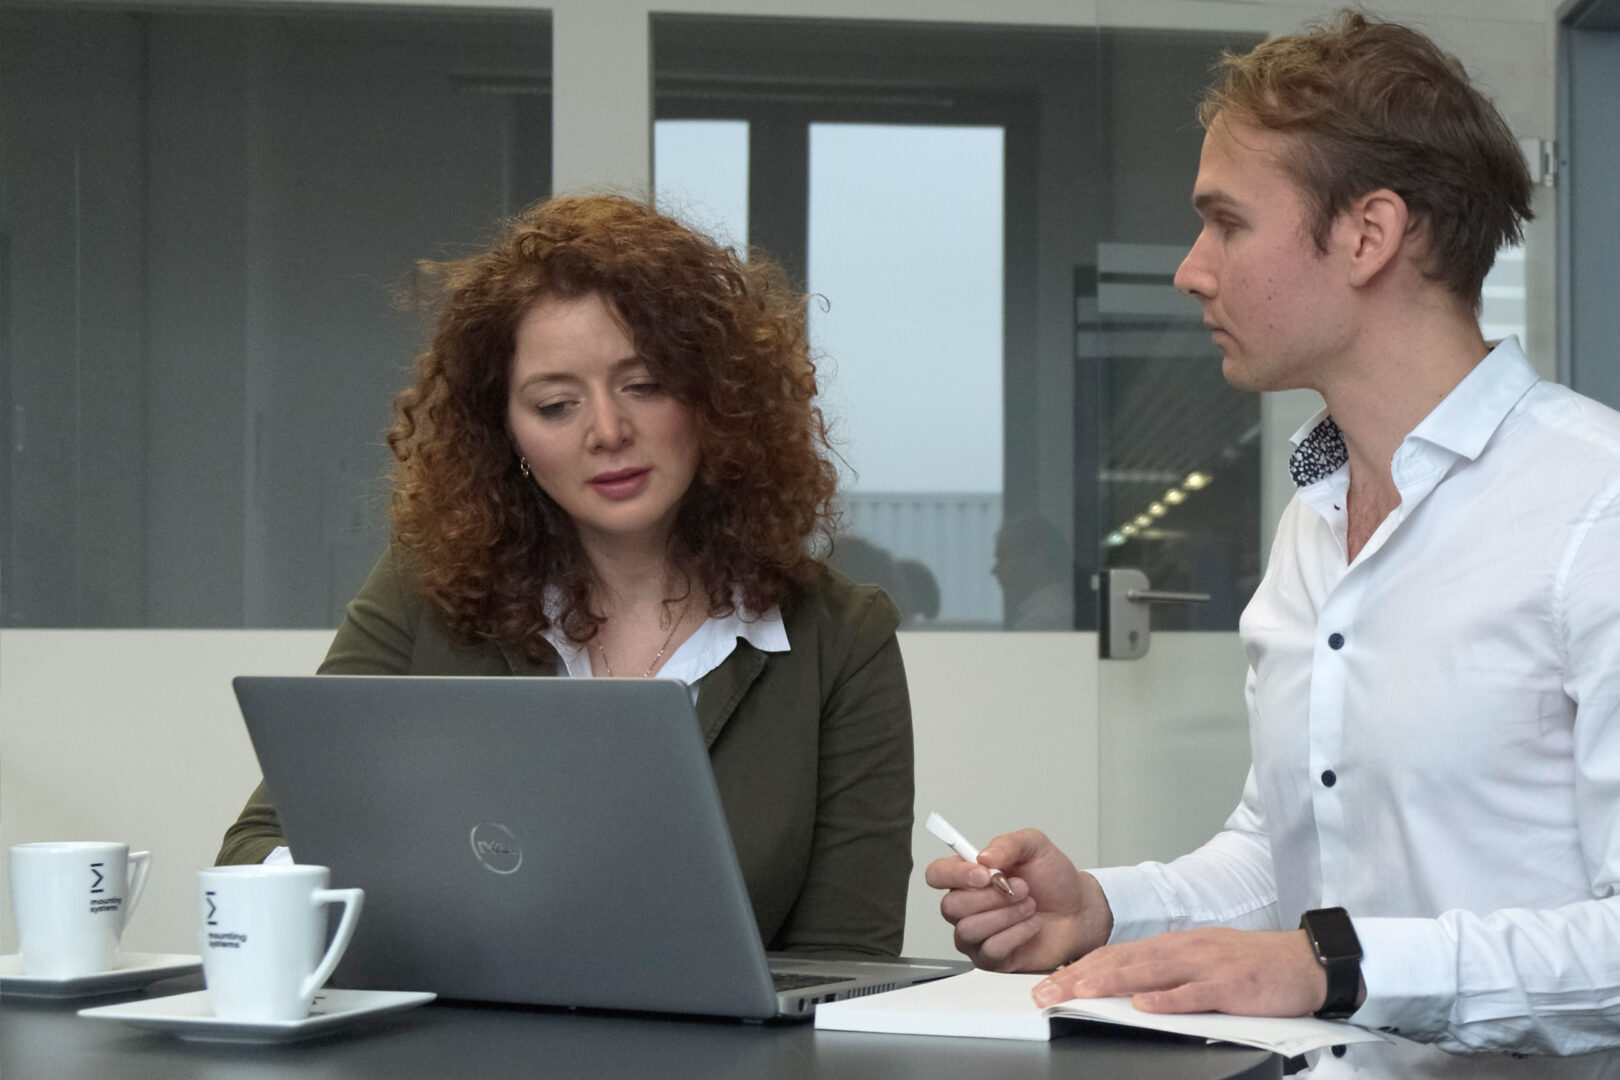 Mounting Systems employees in a meeting